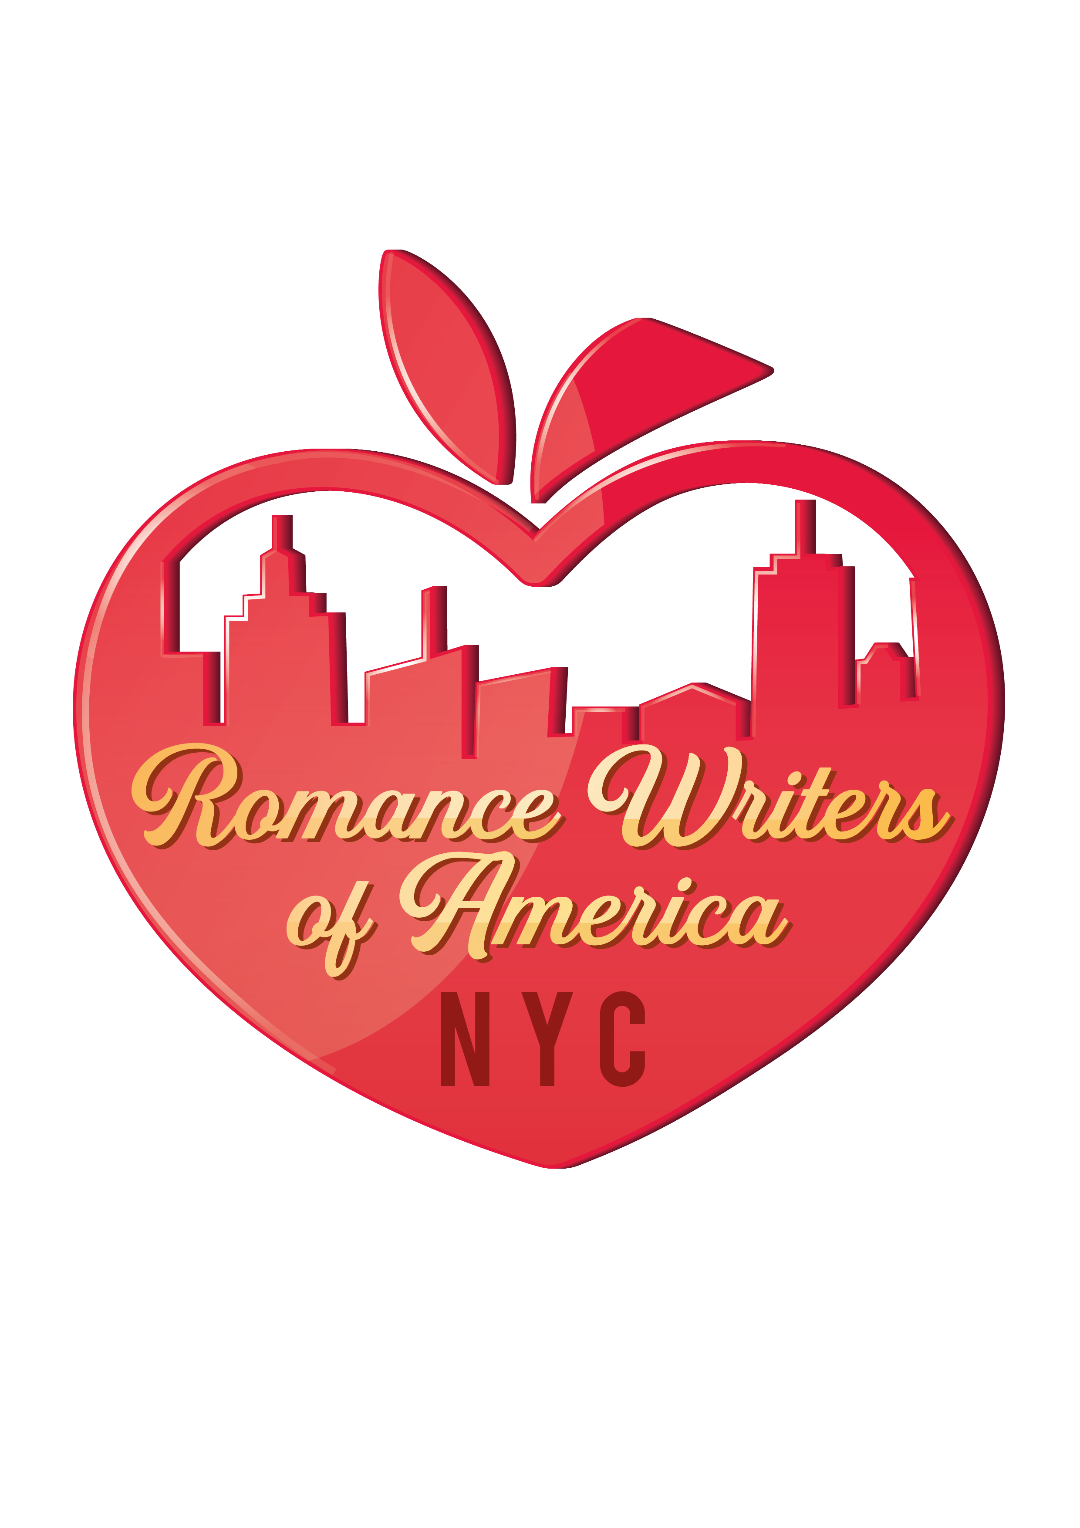 Romance Writers of America New York City, Inc.